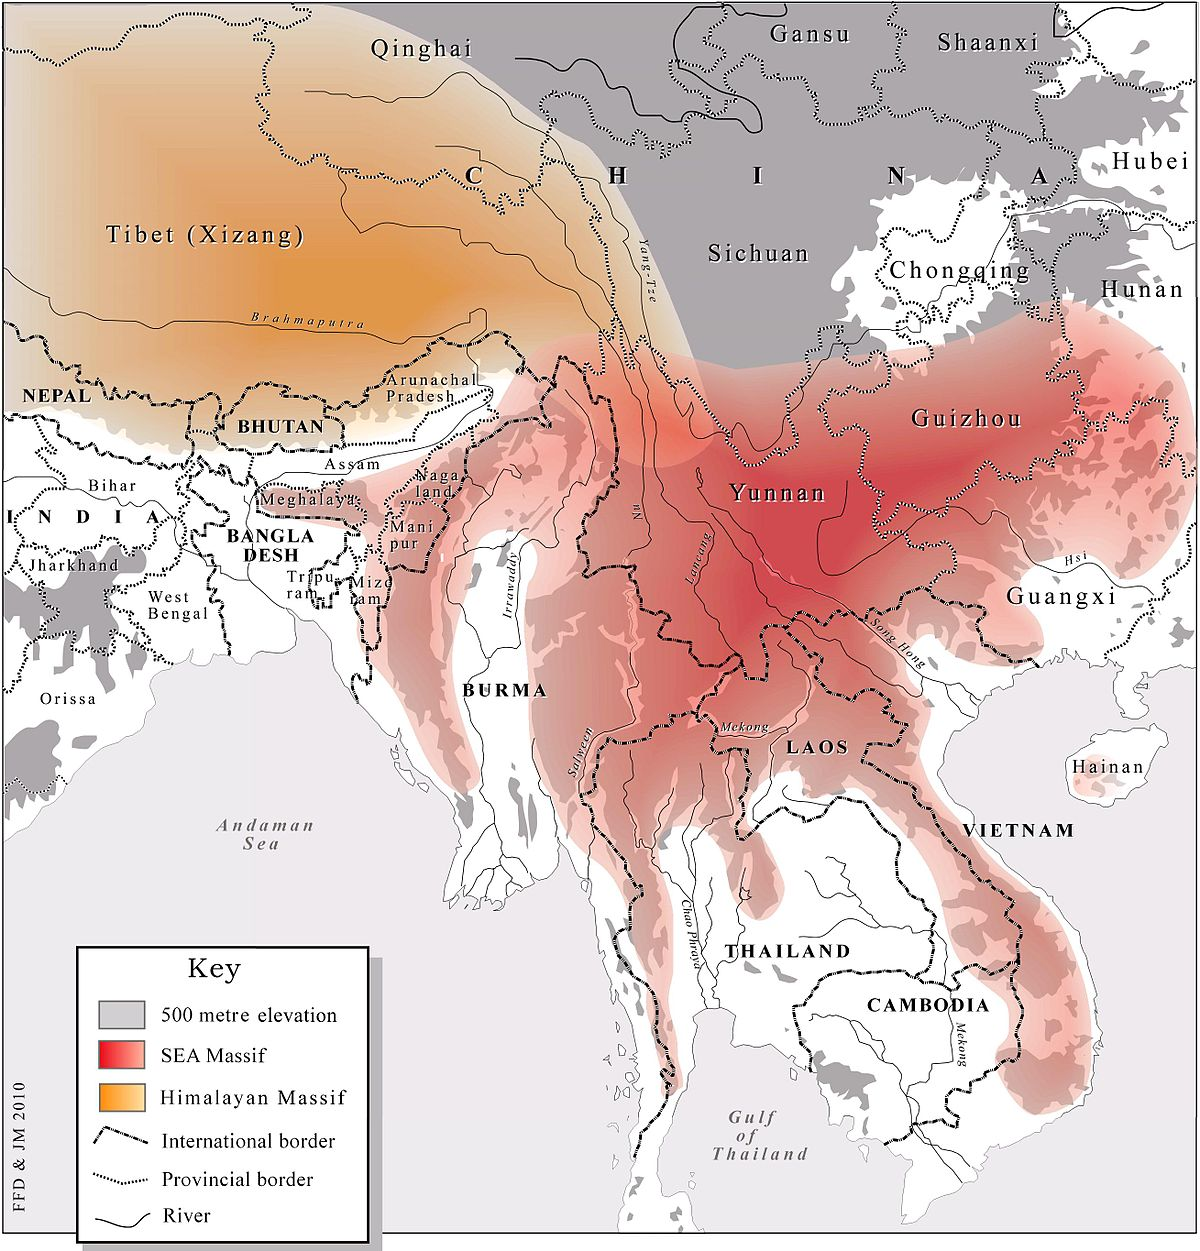 The Southeast Asian Massif (in red) next to the Himalayan Massif (in yellow)[5]